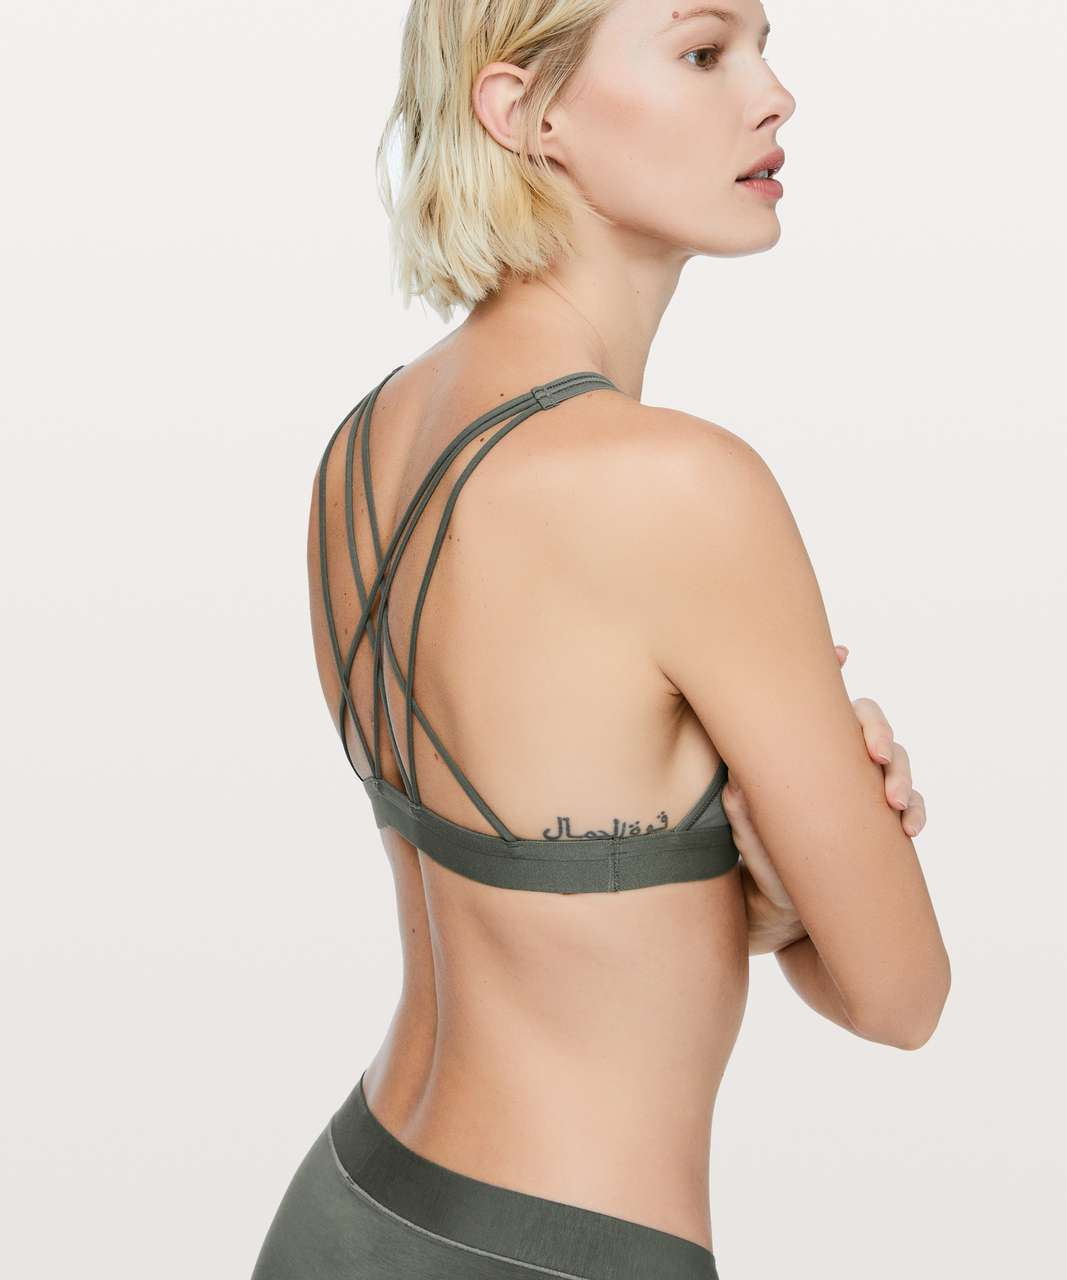 Lululemon A Little Bit Closer Bralette - Grey Sage